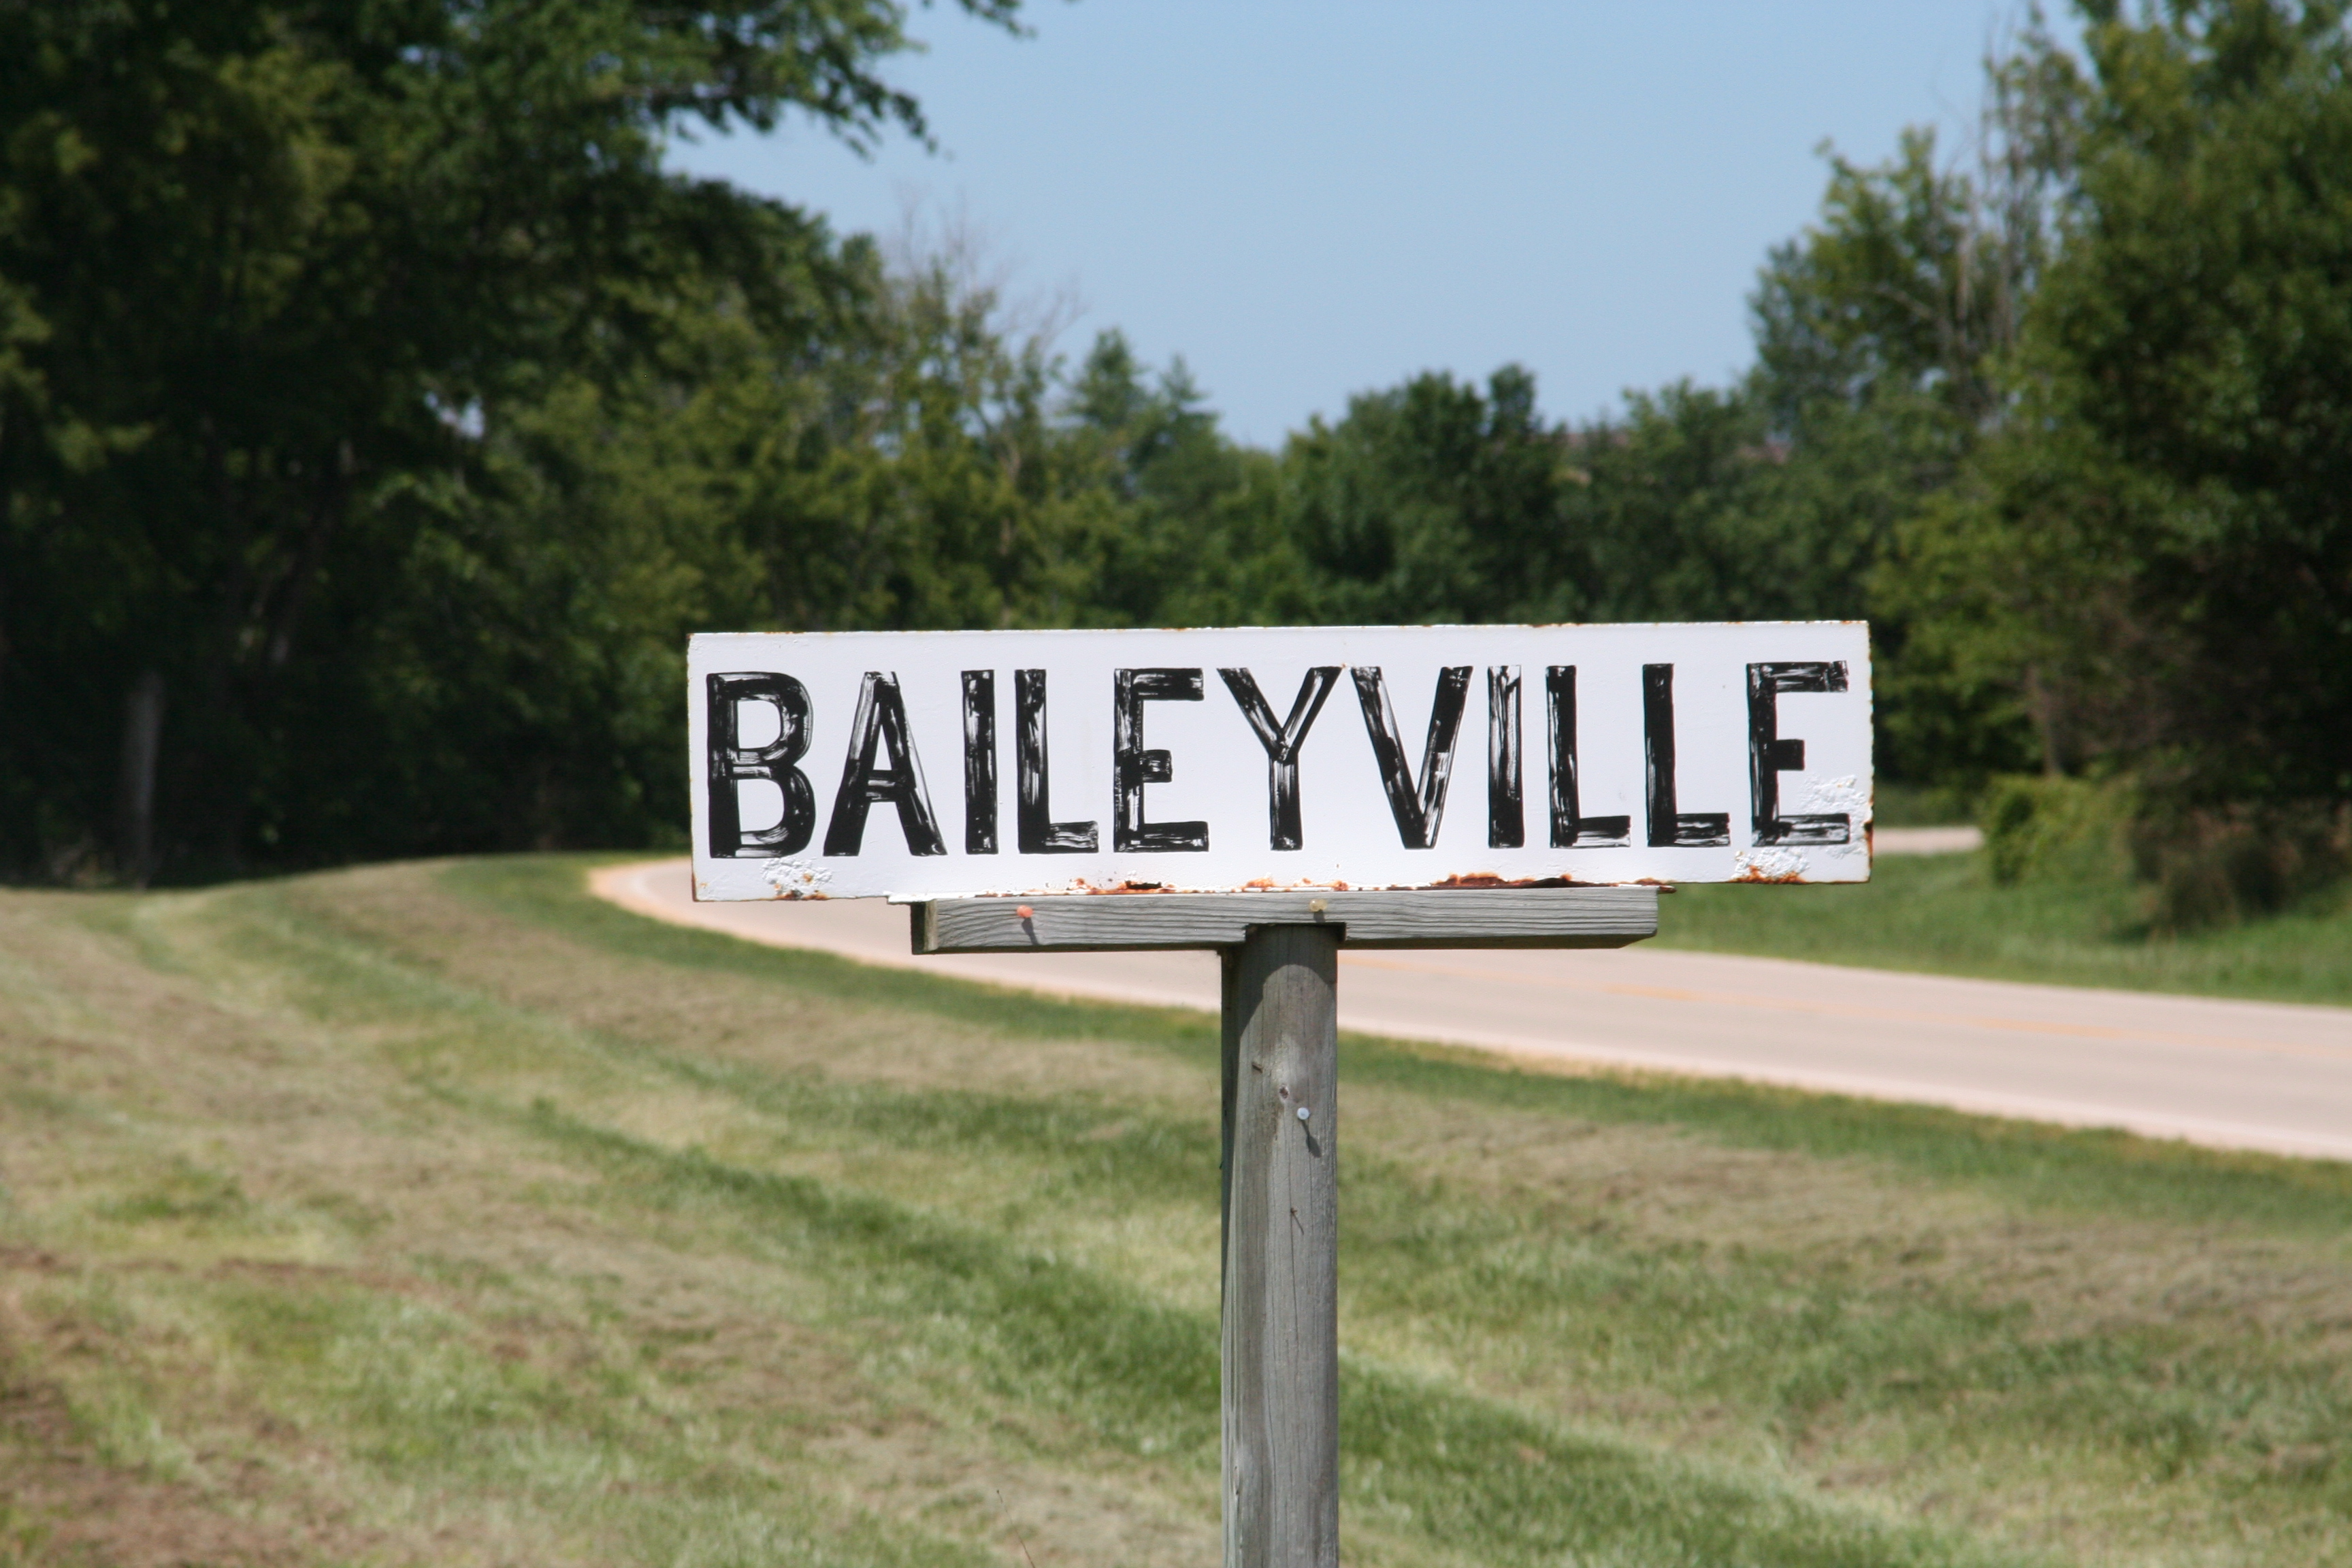 baileyville dating Dating family & friends sex & intimacy your home  an ally on the issues that matter most to you in baileyville free membership for your spouse or partner.